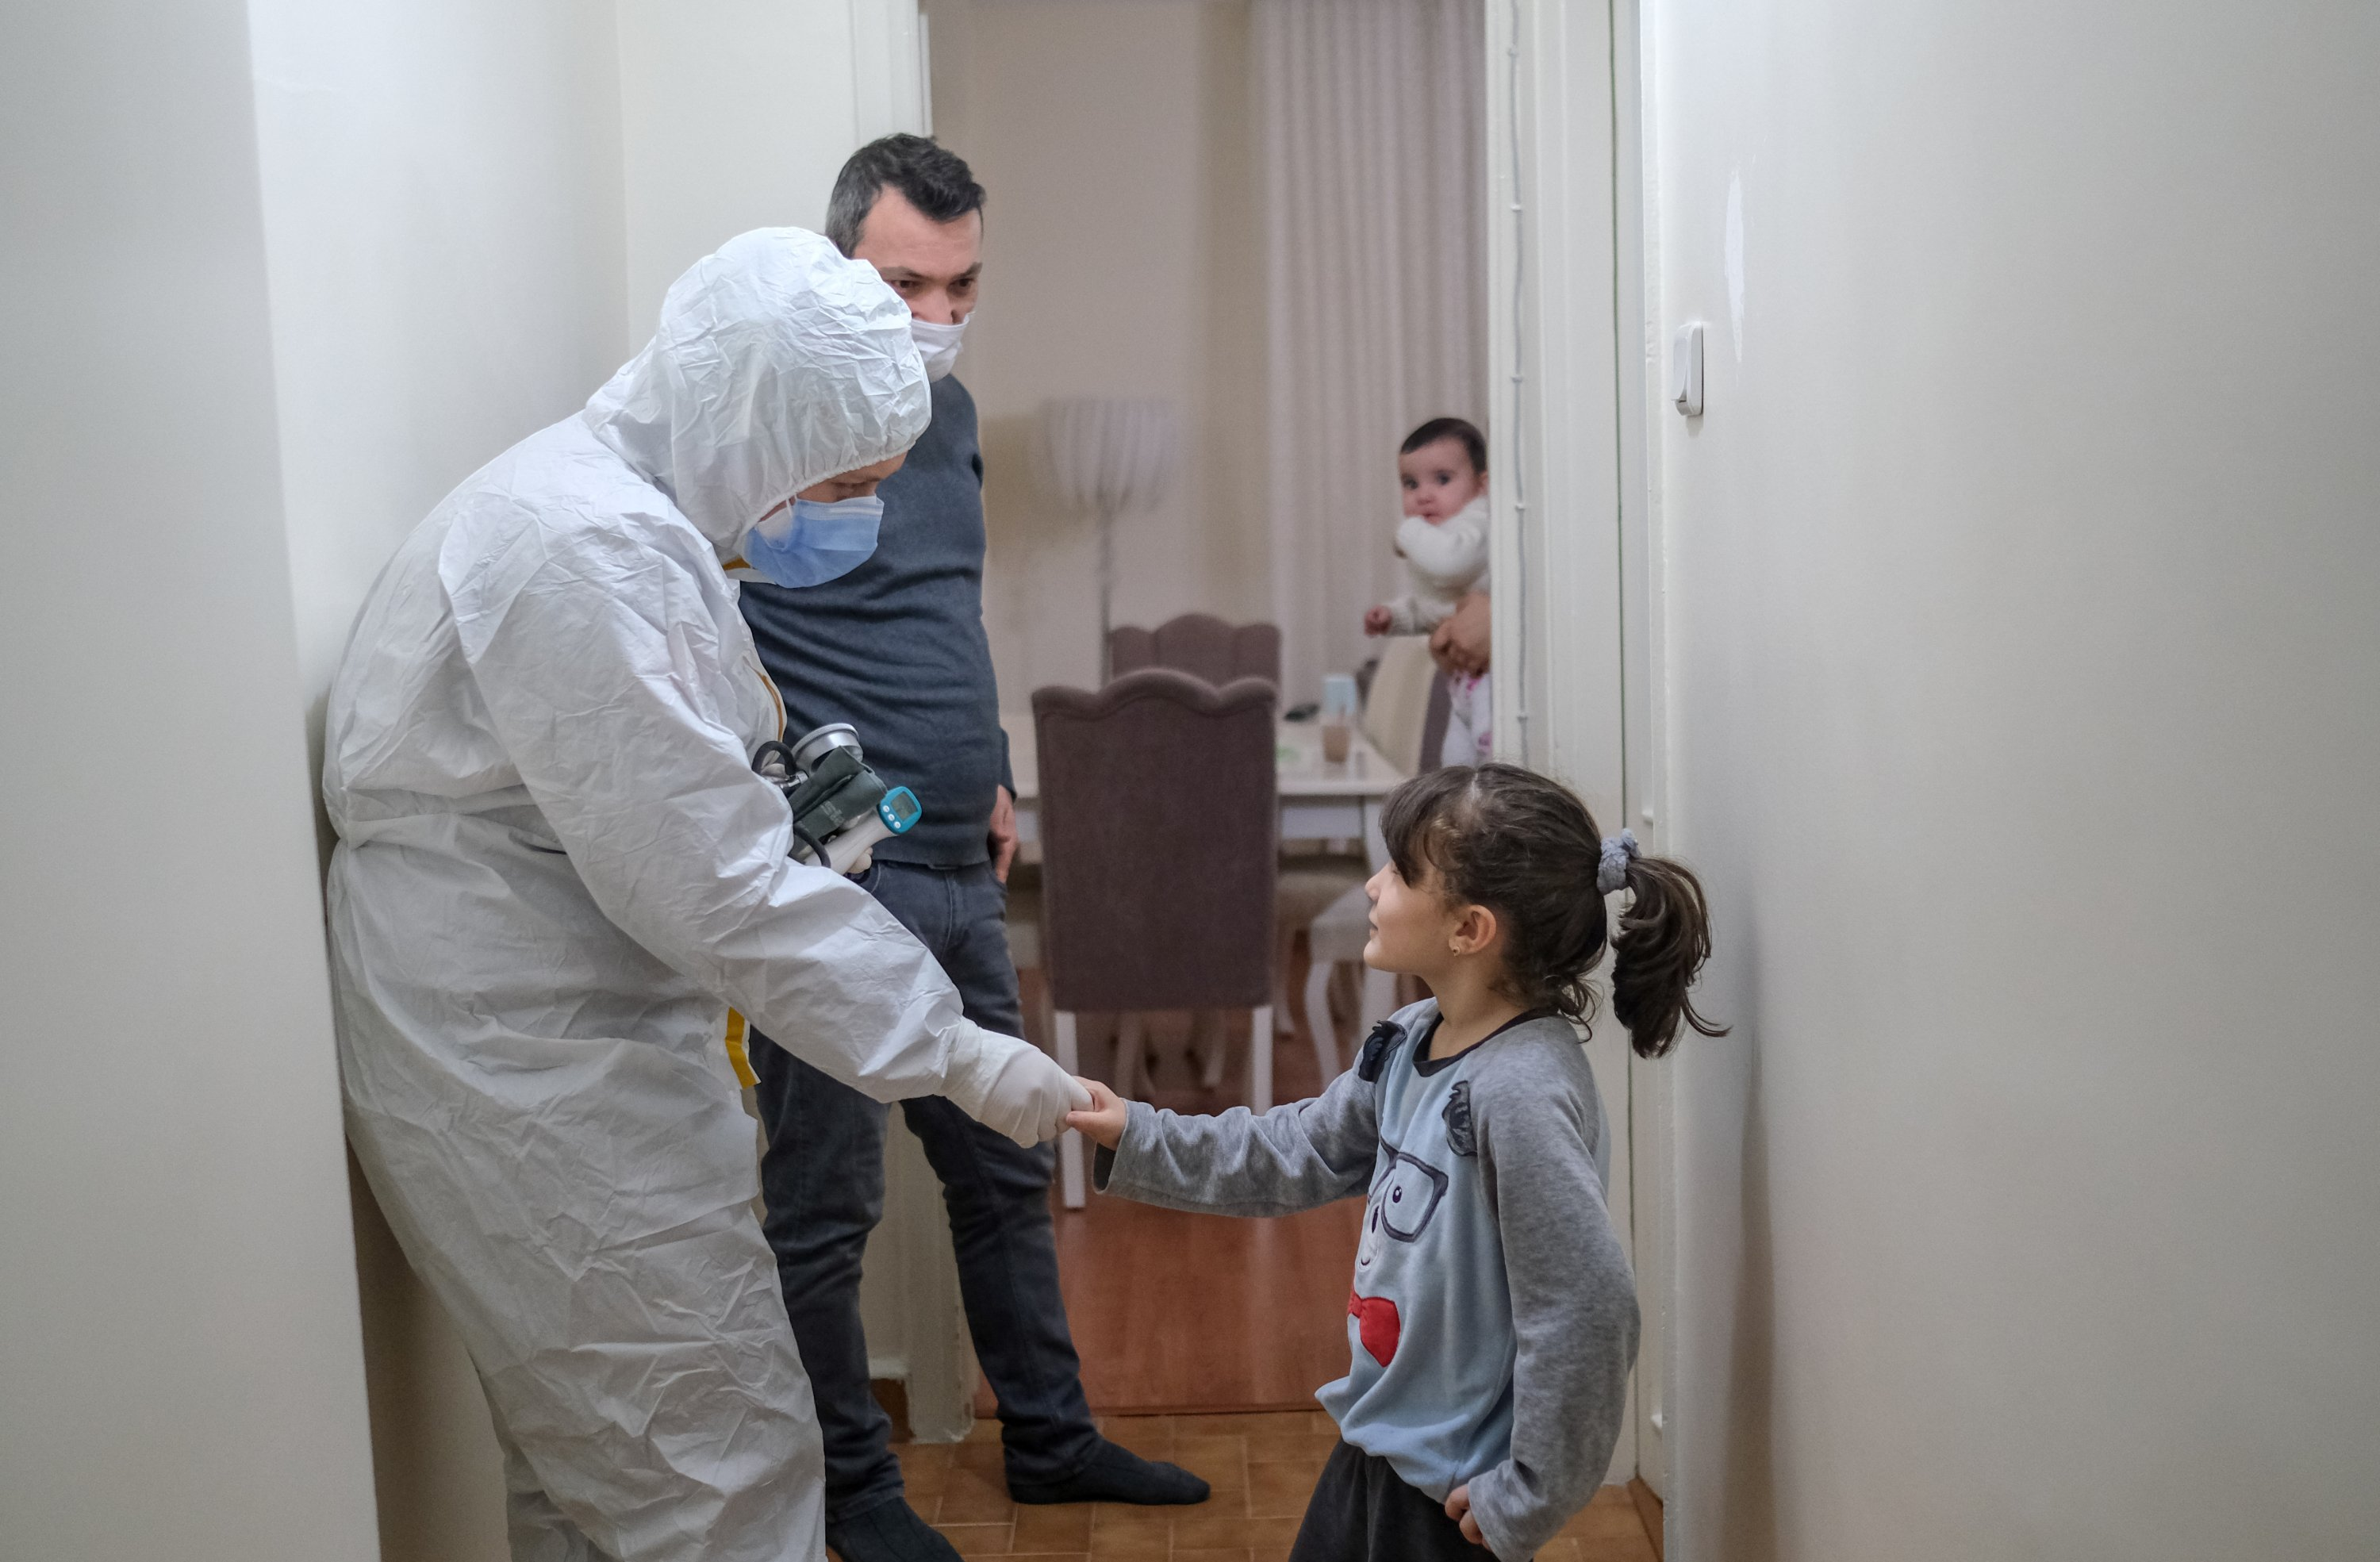 The crew greets a family during one of the house visits in their shift, in Istanbul, Turkey, Dec. 4, 2020. (PHOTO BY UĞUR YILDIRIM)